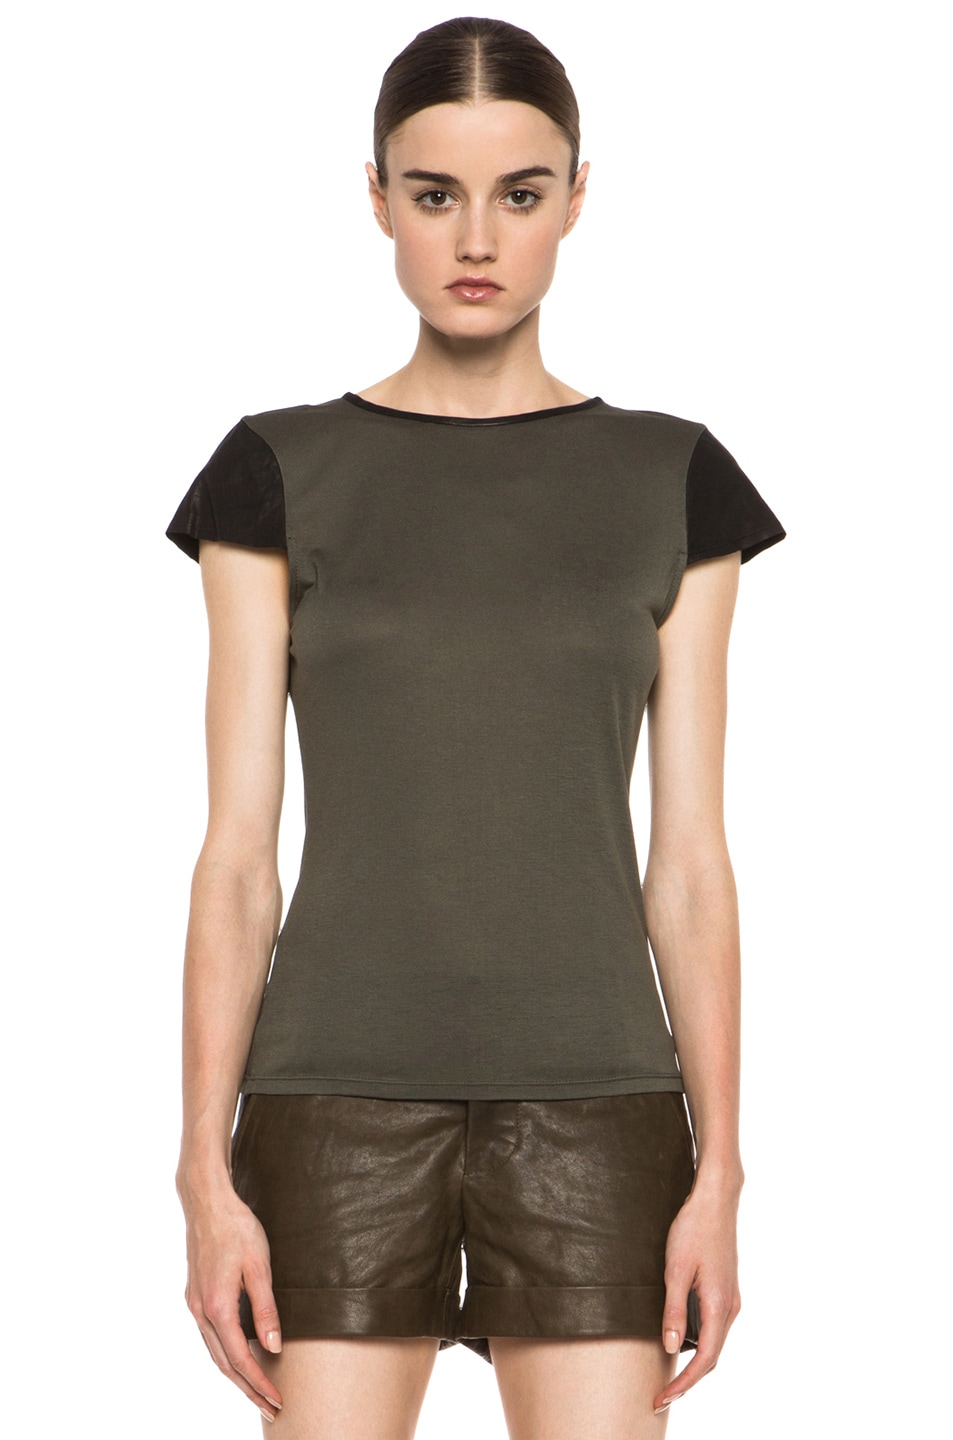 Image 1 of Alice + Olivia Fitted Viscose Tee with Leather in Old Army